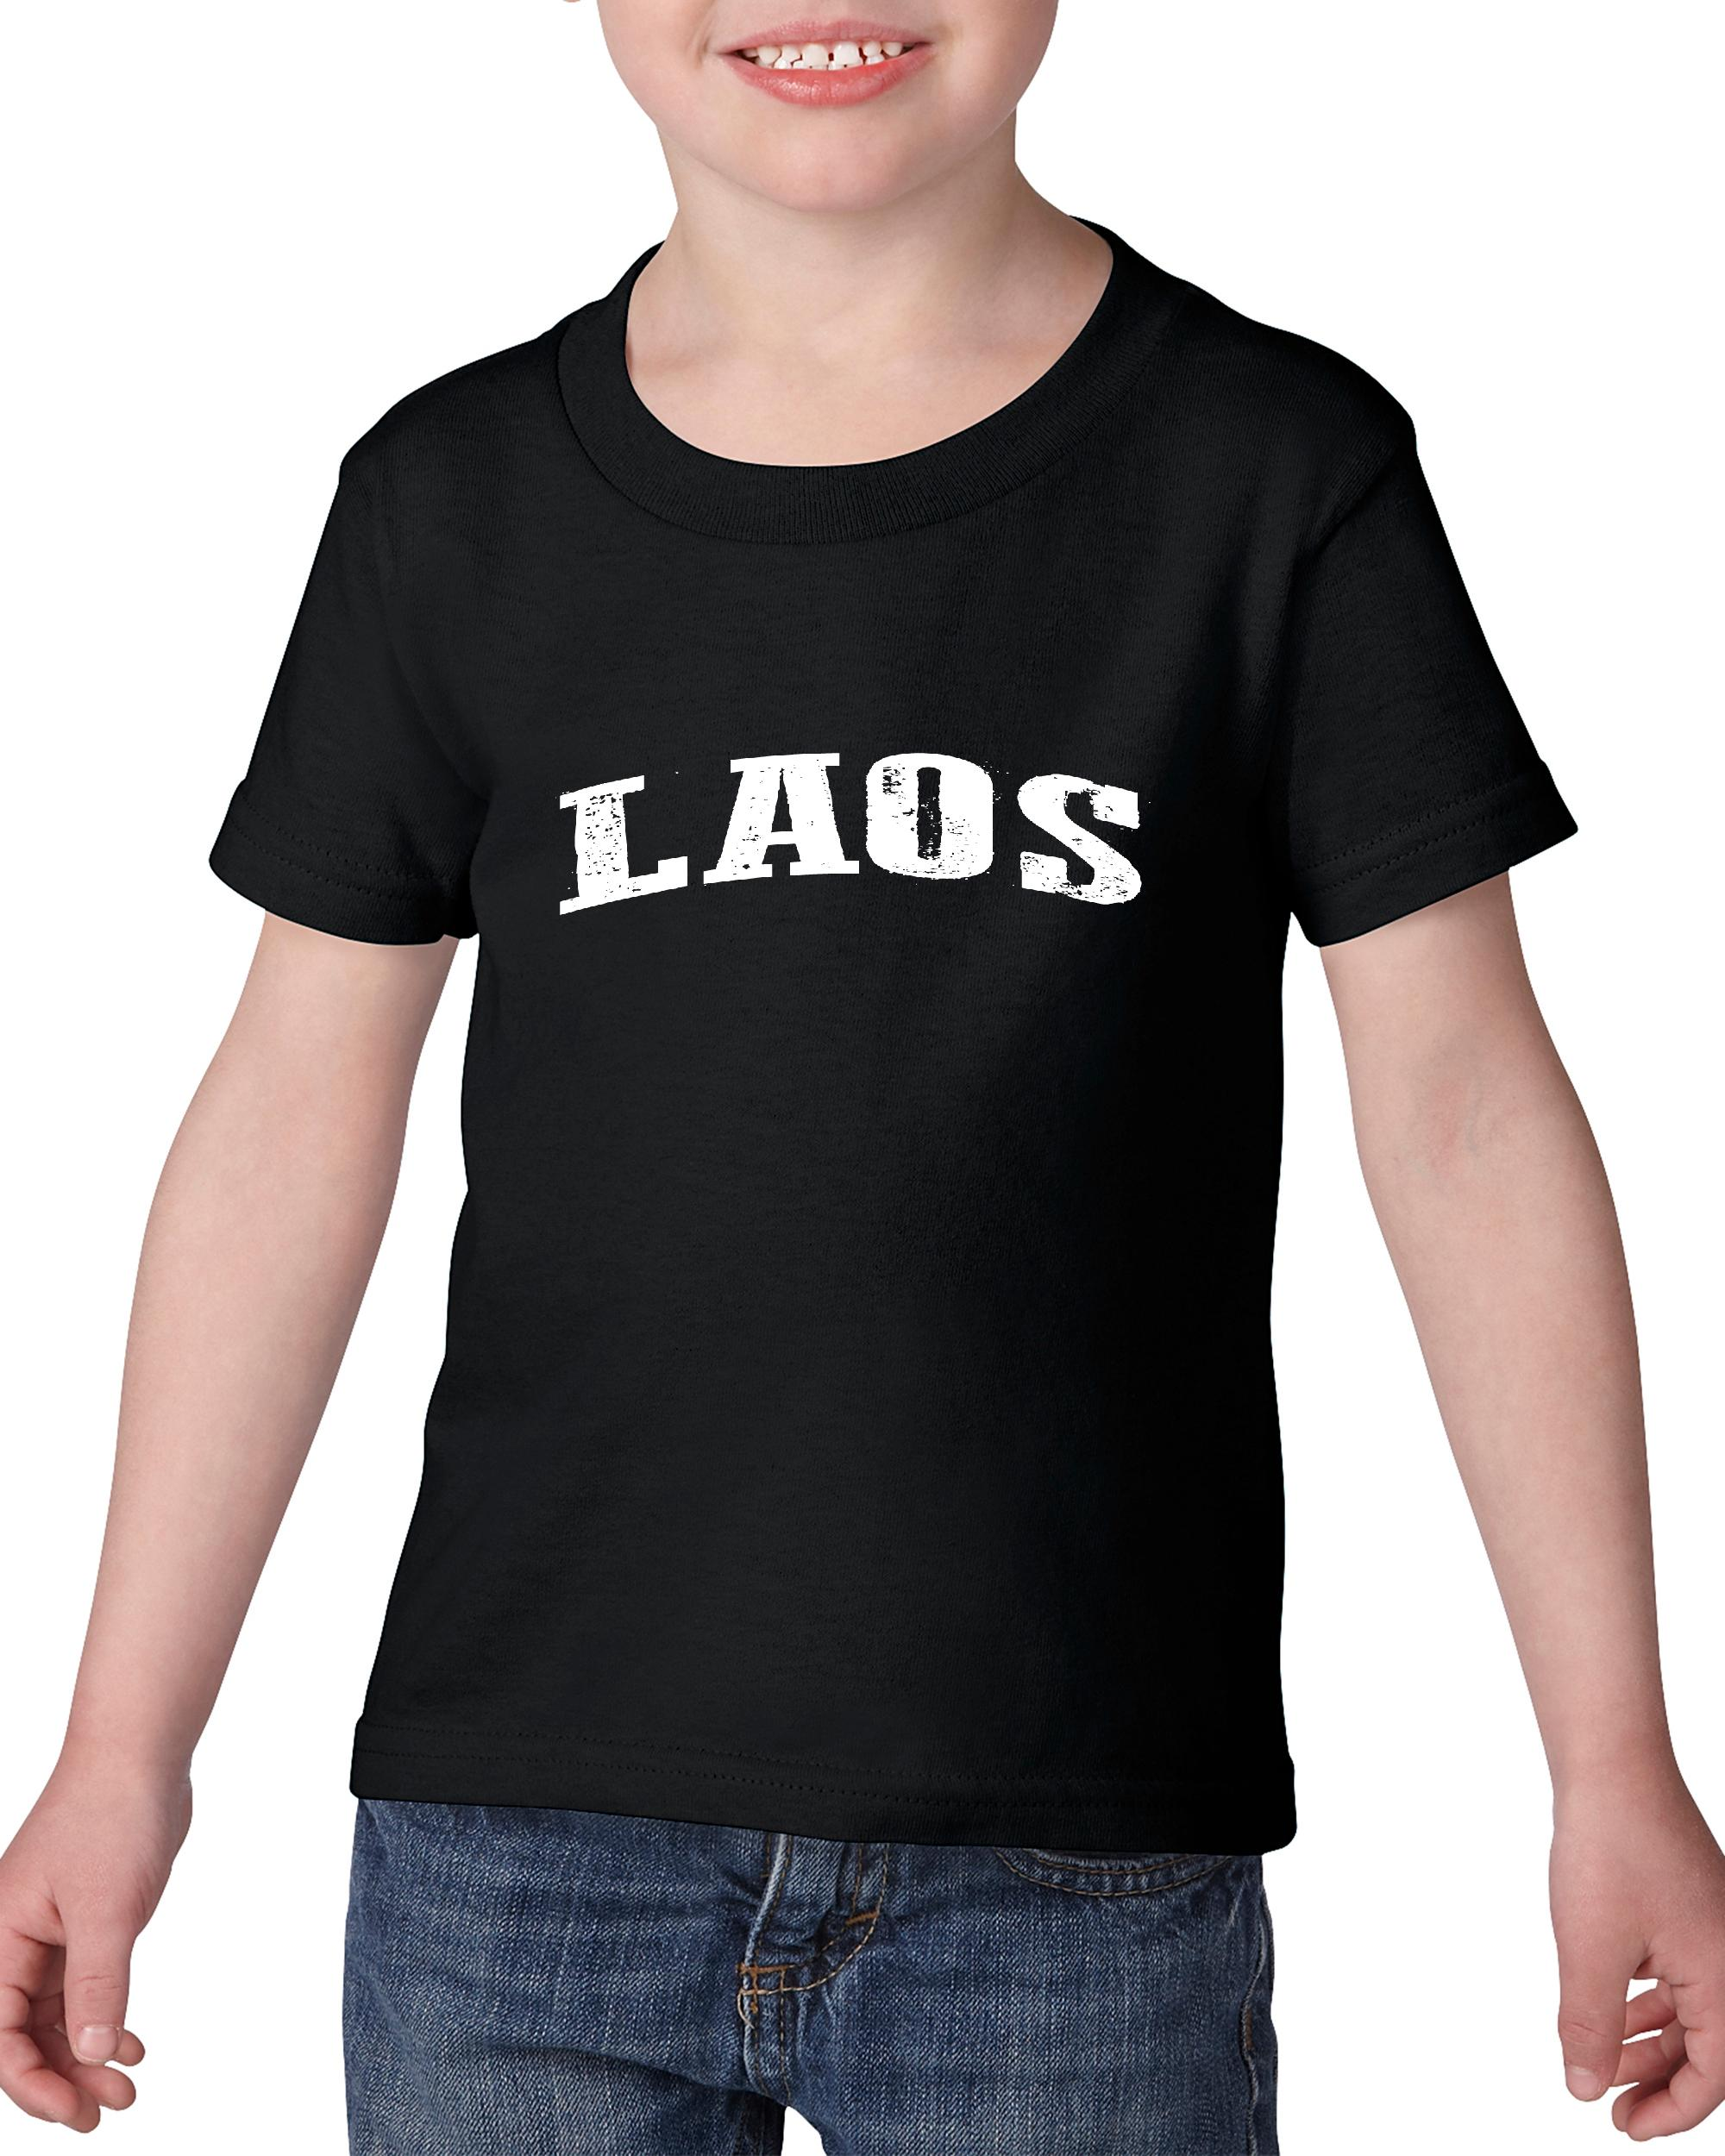 Artix What To Do in Laos Travel Deals Luang Prabang Tour Guide Map Laotian Flag Heavy Cotton Toddler Kids T-Shirt Tee Clothing